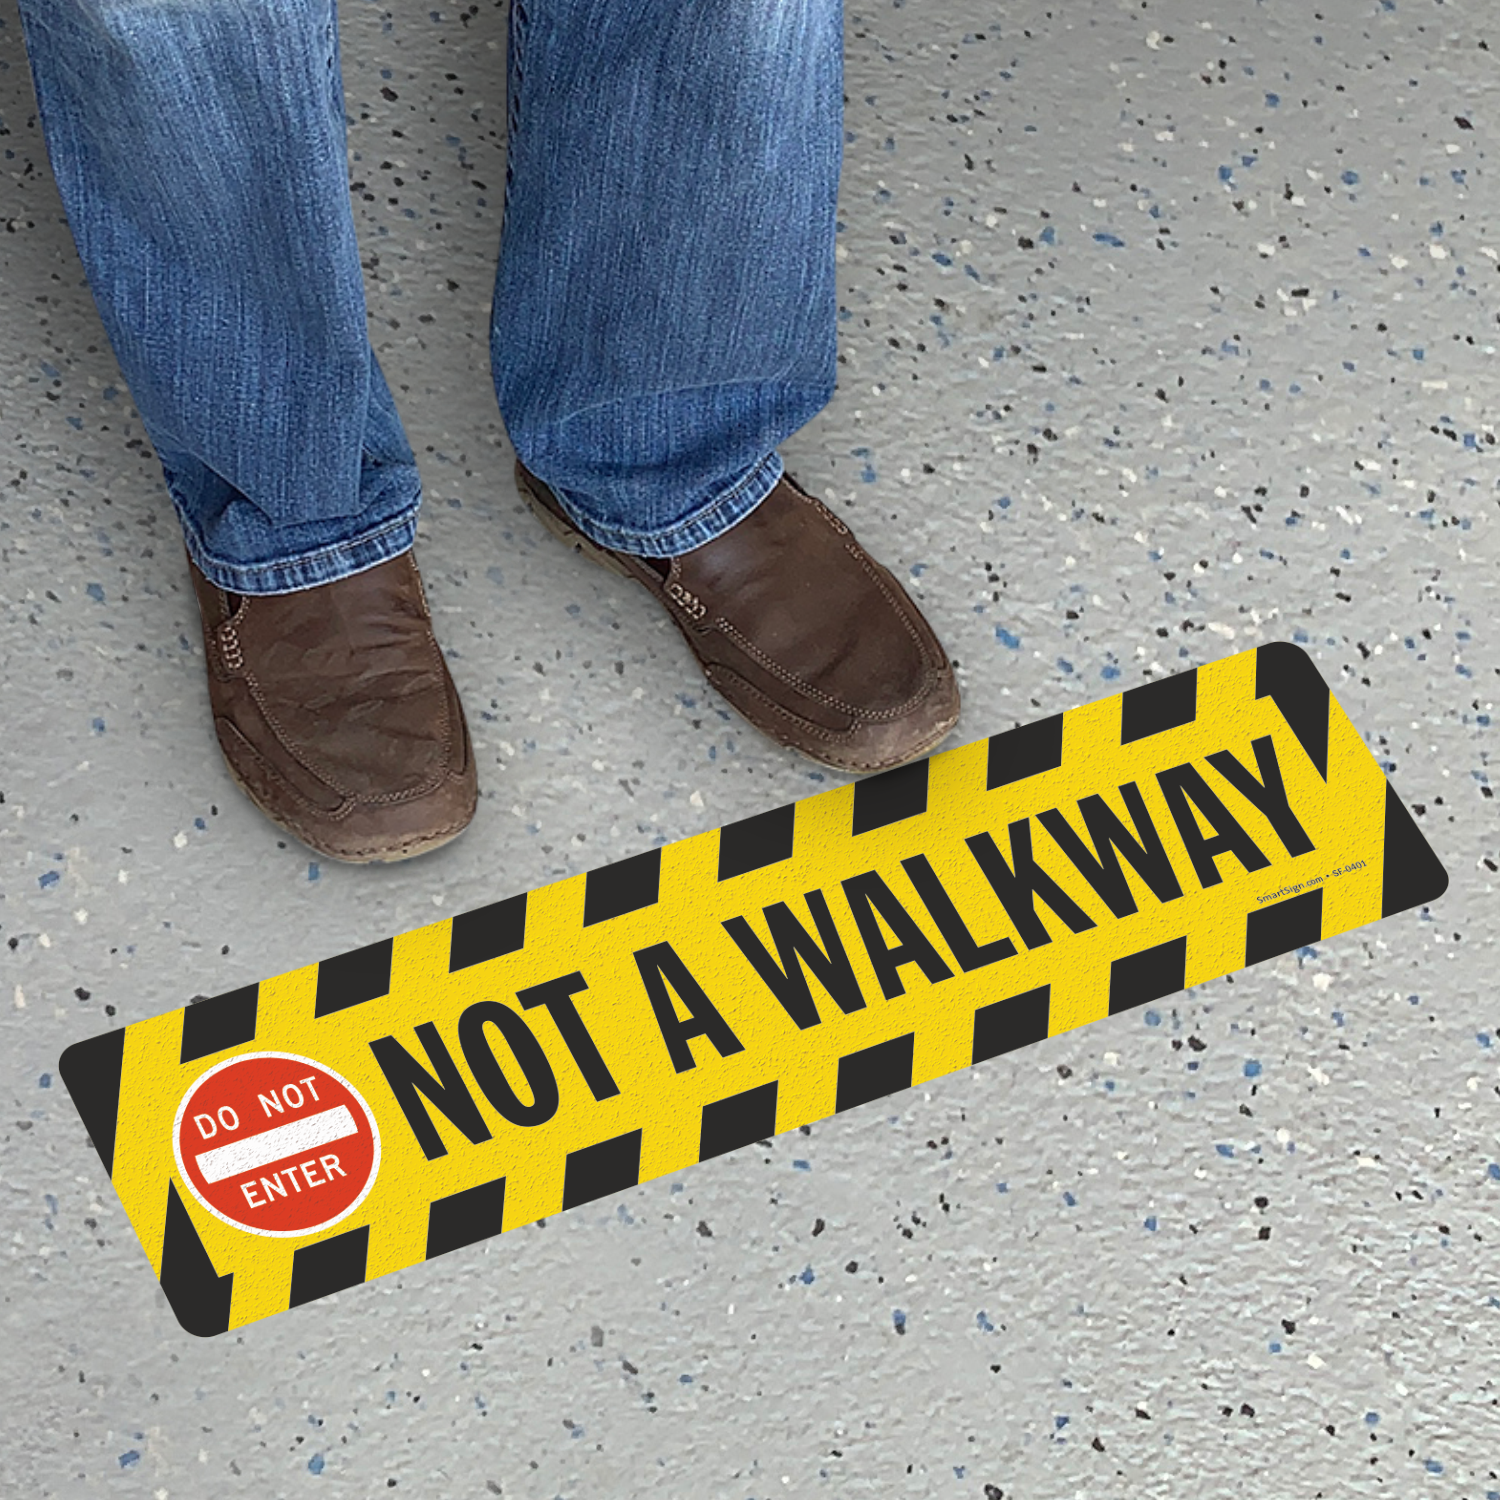 Not A Walkway, Do Not Enter Slip-Resistant Sign